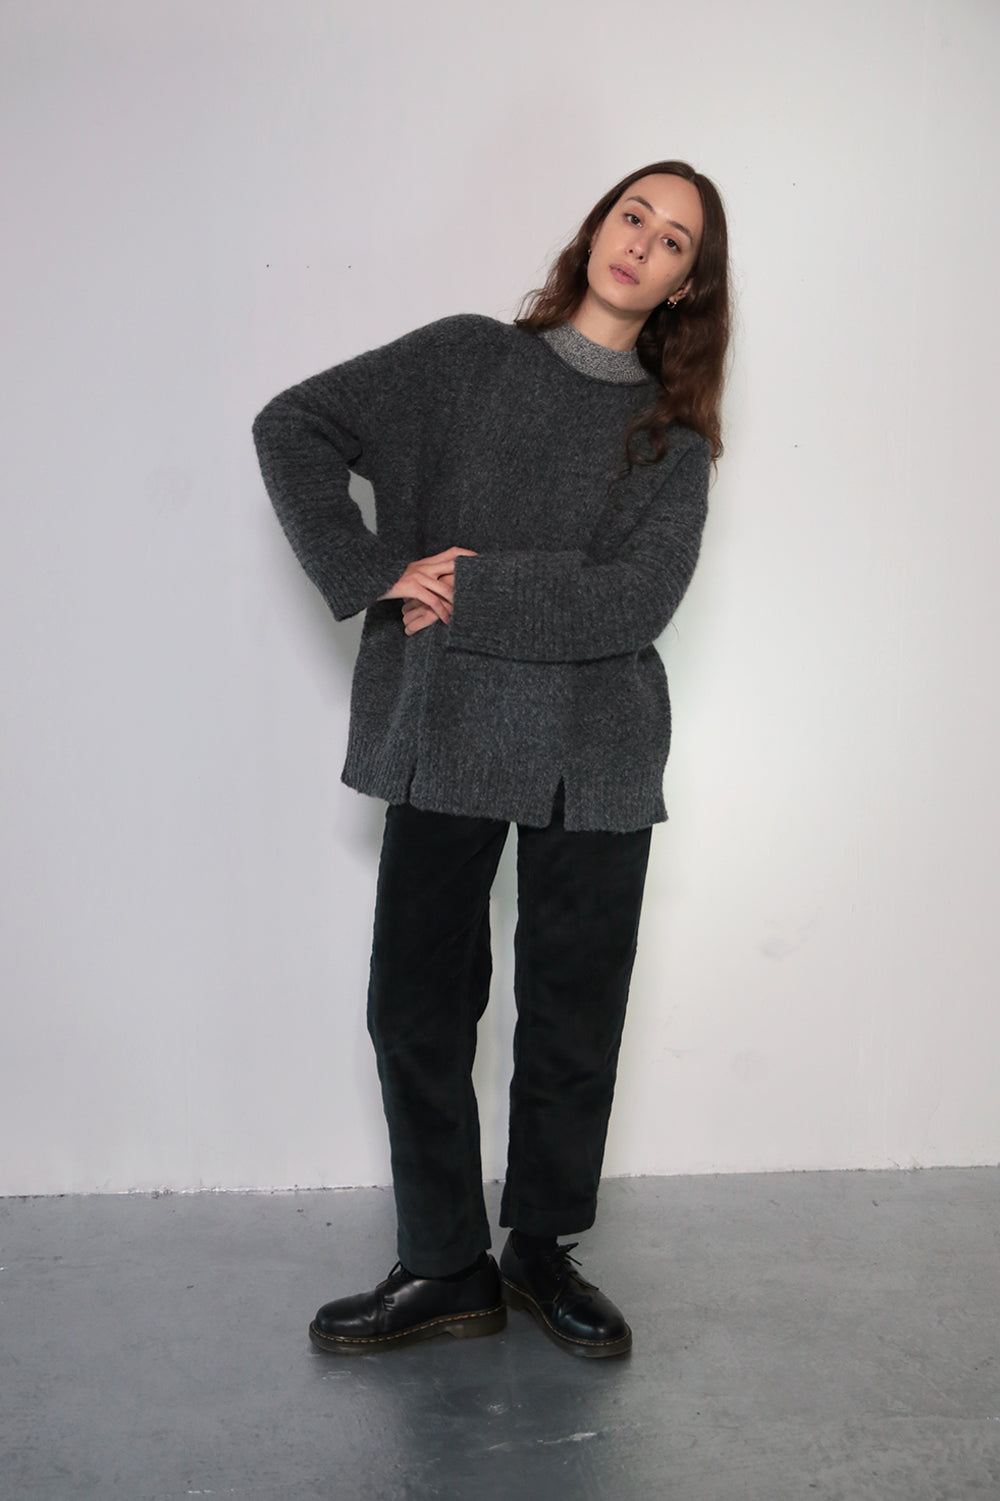 LONG PANEL SWEATER - PEPPER W/ CONTRAST NECKLINE